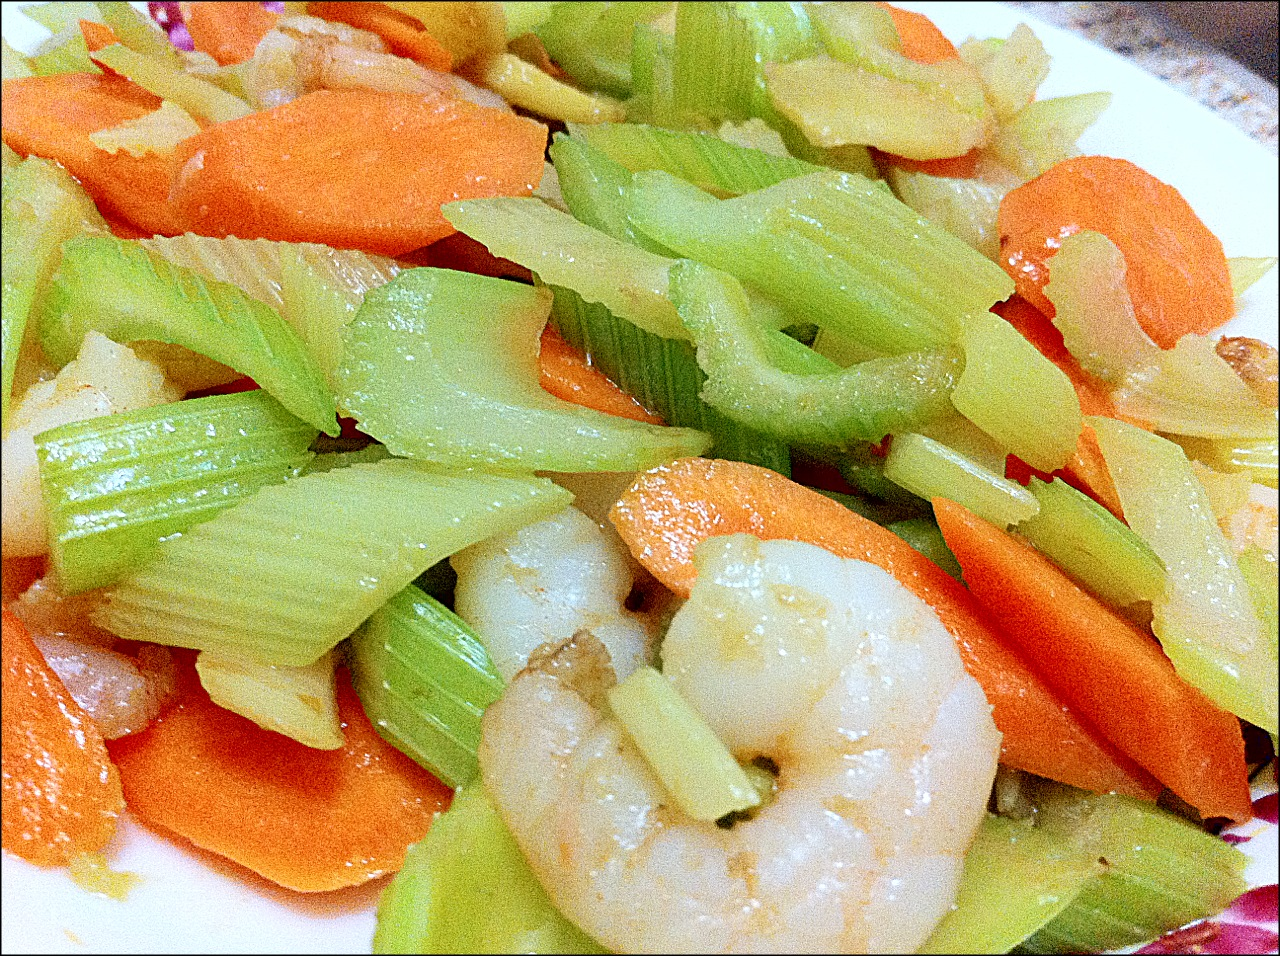 My Little Cookery Book: Stir Fried Celery with Shrimp